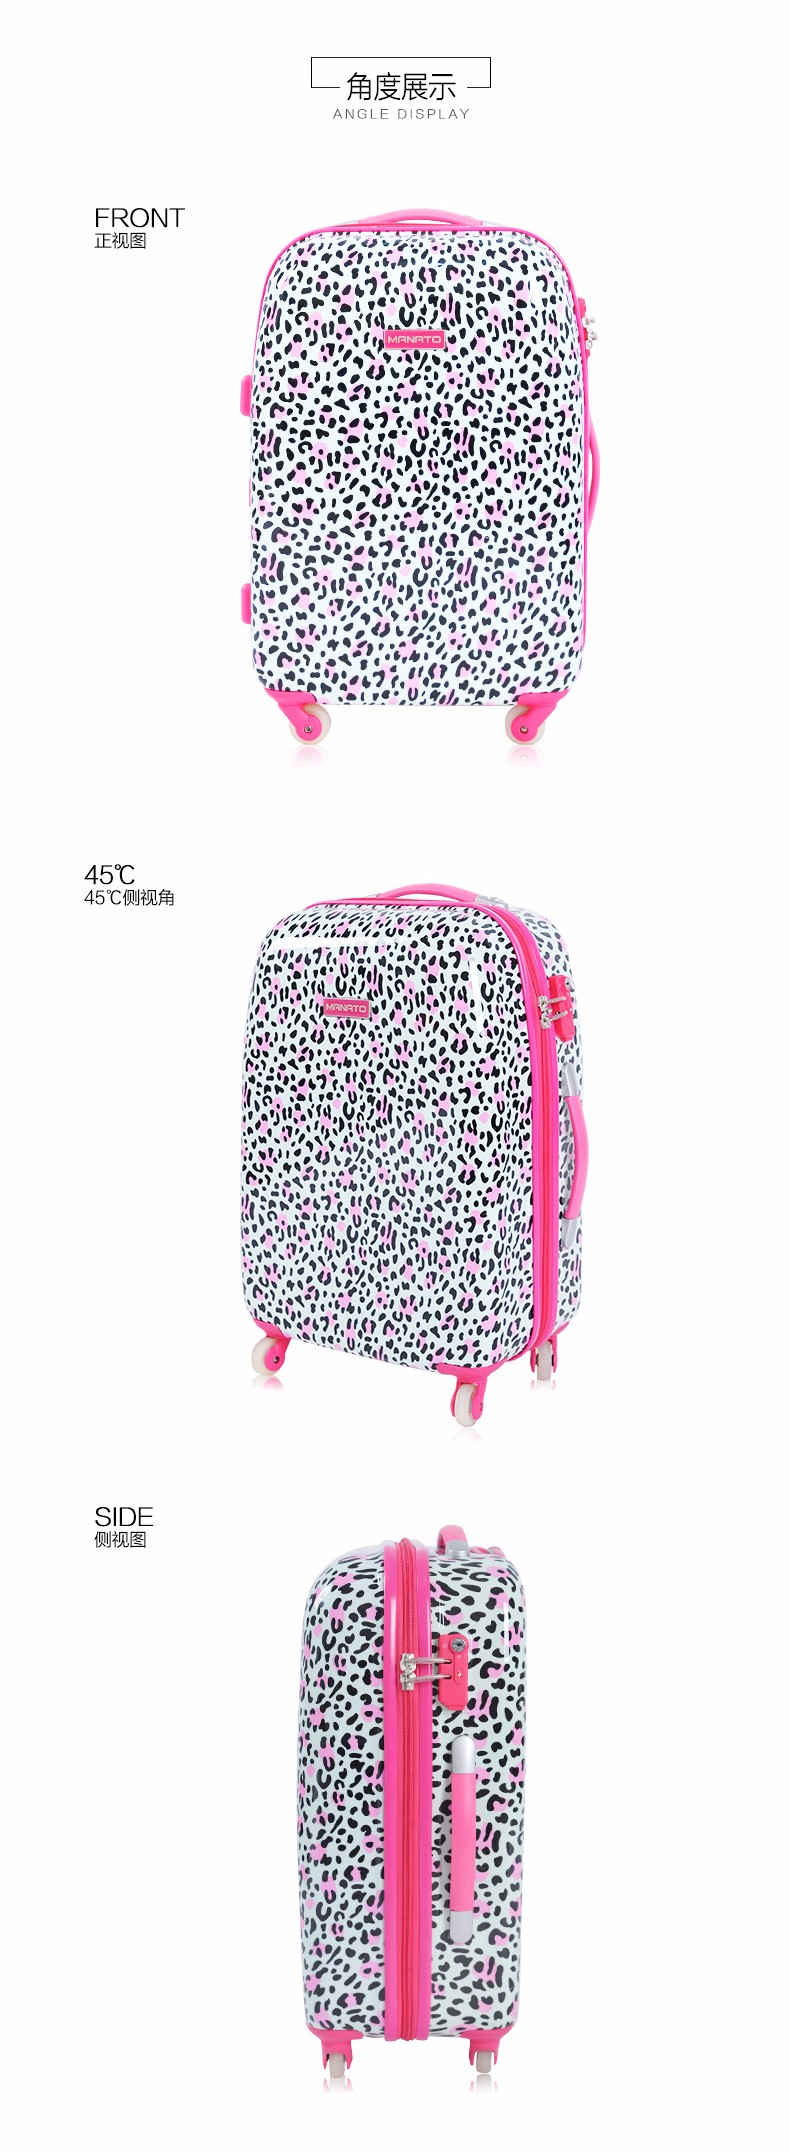 Manato Women\'s Luggage 22 Inch ABS Travel Luggage Leopard Fshion Trolley Suitcase Board Chassis Caster Cute Cartoon Luggage